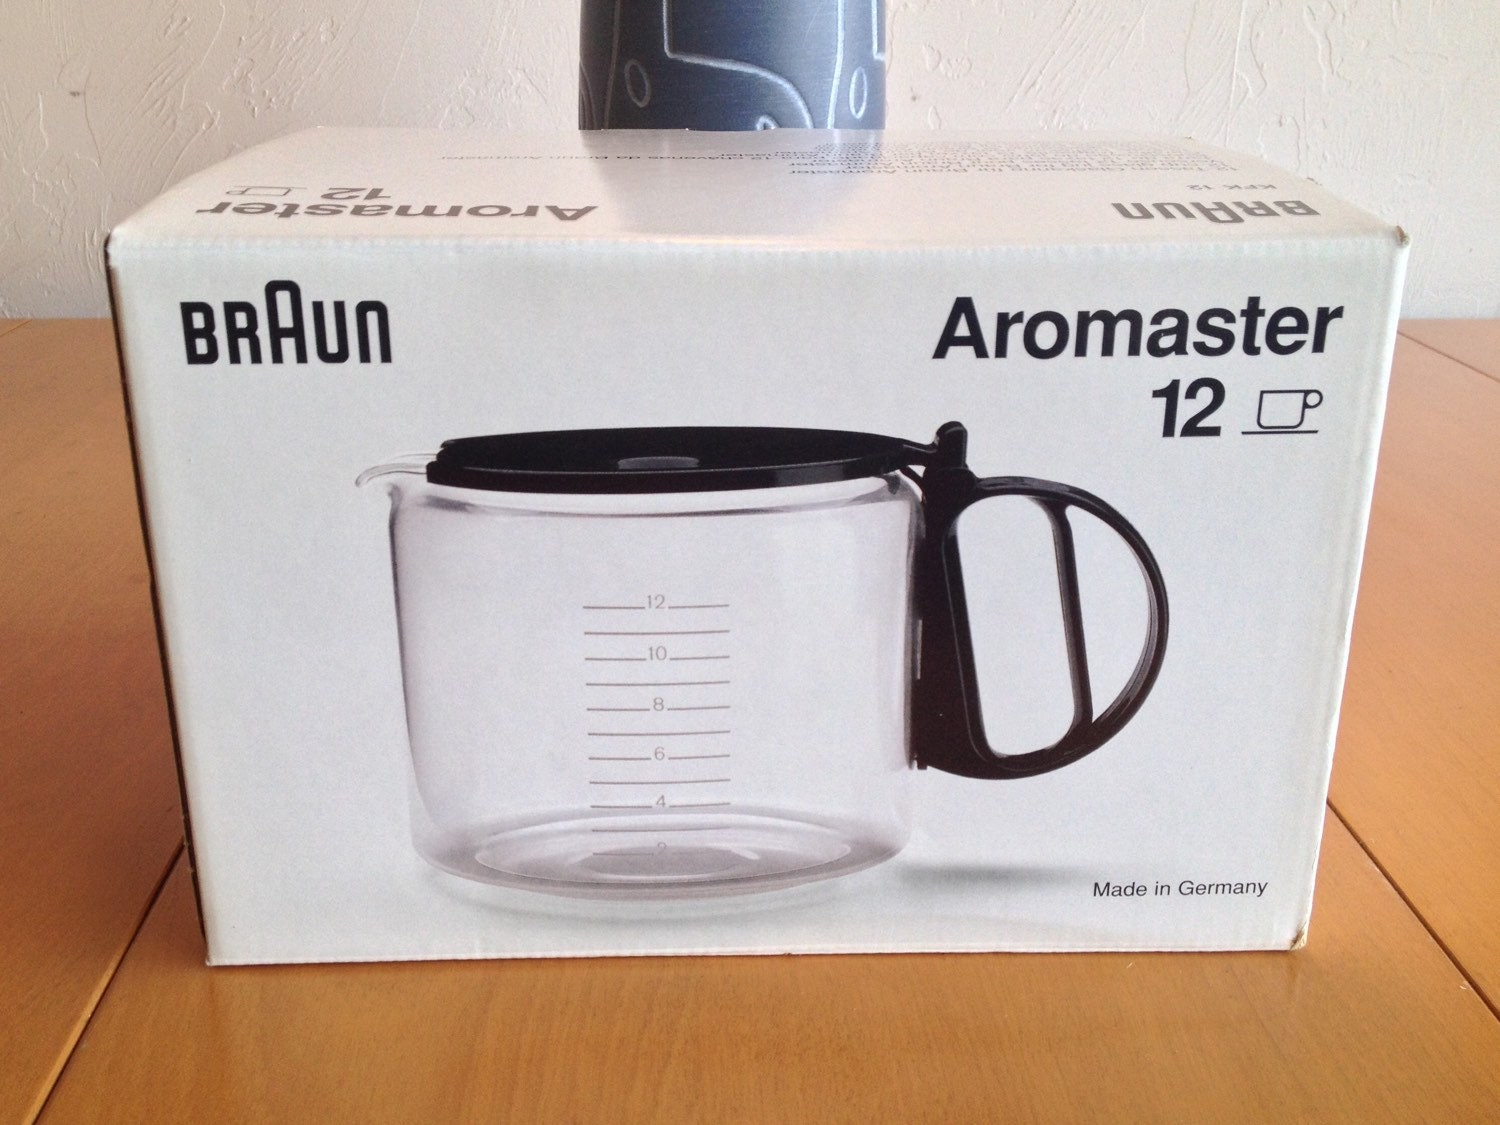 Braun Coffee Maker Pot Replacement : Braun Aromaster KFK 12 Replacement Coffee Pot New In Box